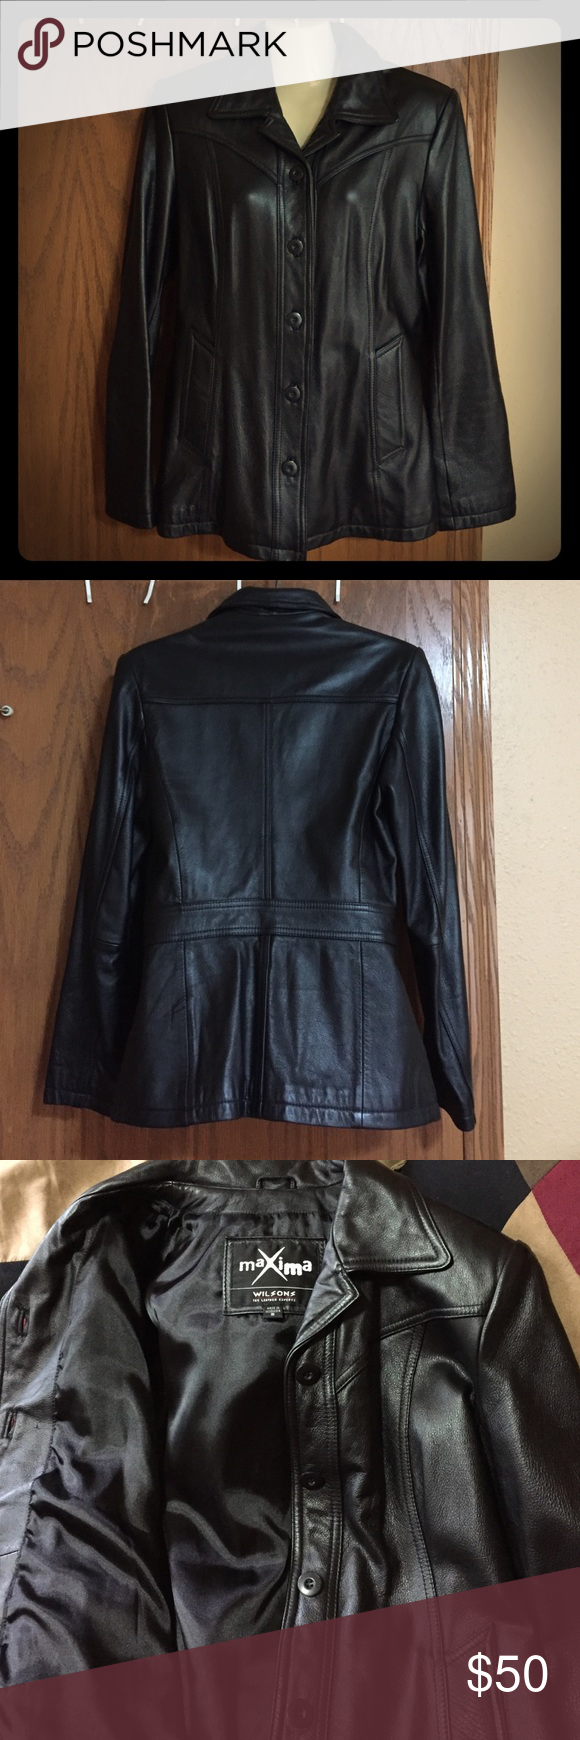 Womens leather coat Wilson's leather coat. Button up black leather coat in good shape. 100% leather outside, interior lining is poly satin and nylon. No rips. Small pinhole in last picture which is right below the collar. Wilsons Leather Jackets & Coats